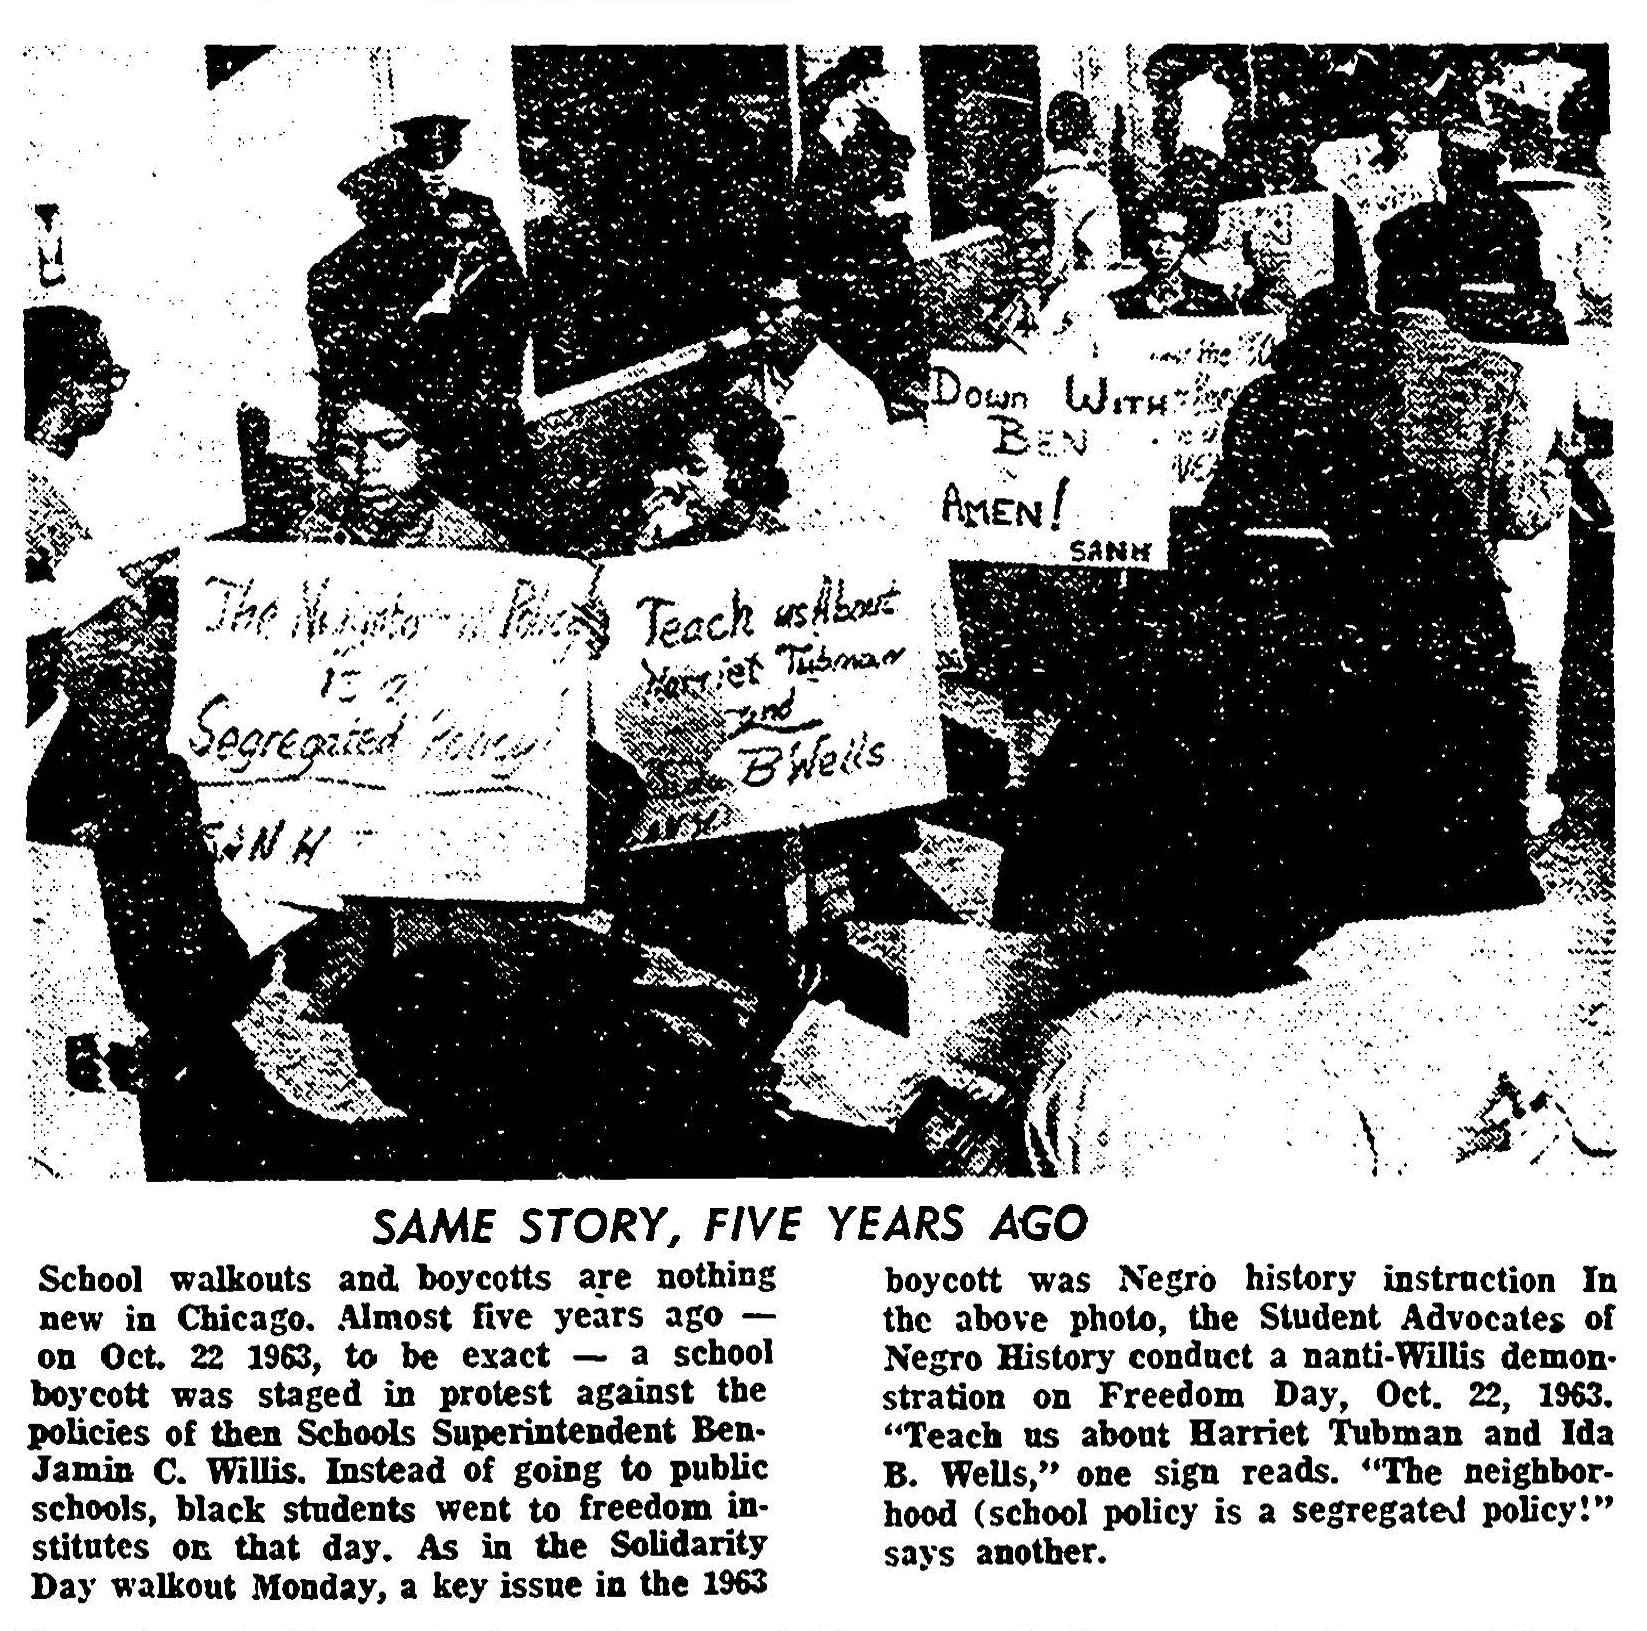 1968, Chicago Tribune: they compared the 68 walkouts with the 1963 walkouts. Seen here, students in 1963 demand Black history curriculum that includes Harriet Tubman and Ida B Wells.